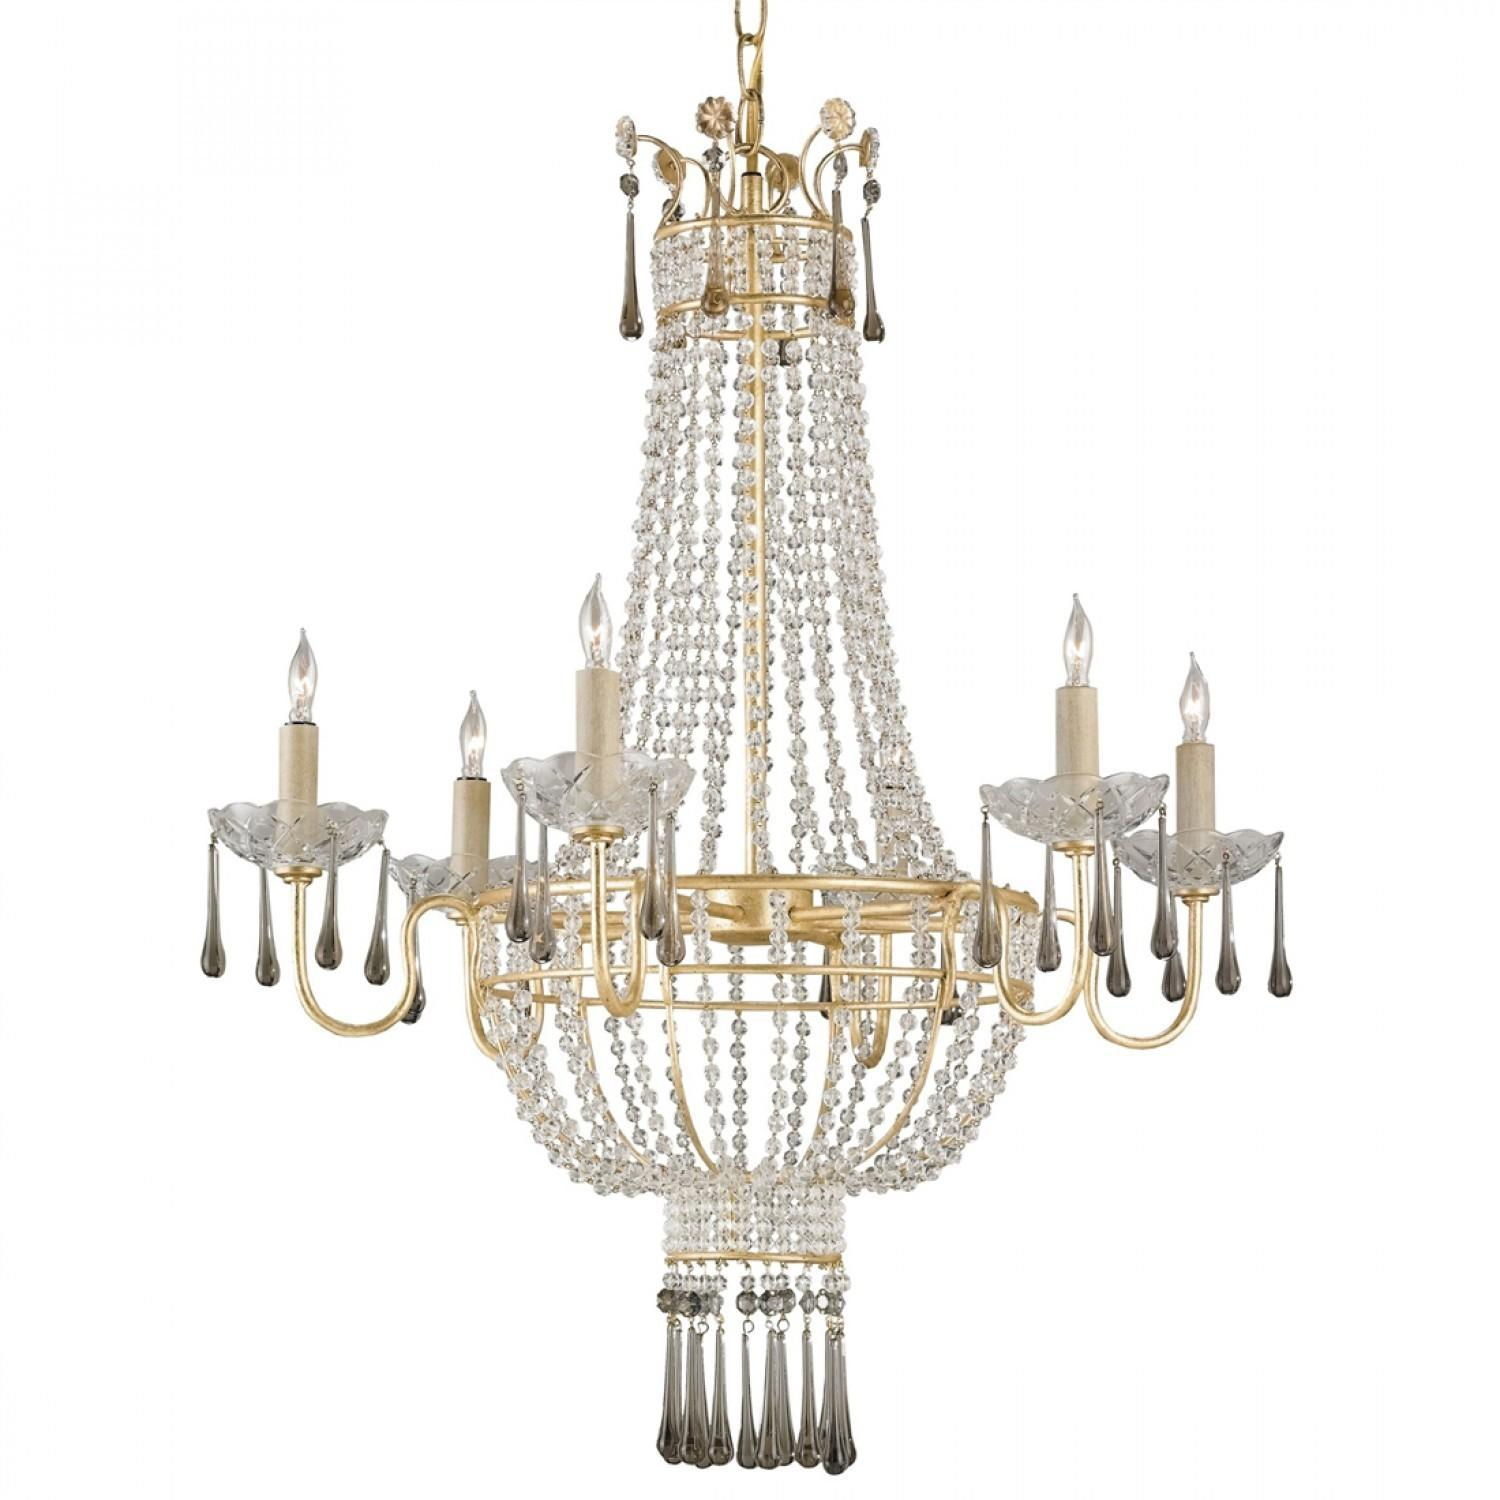 Luxury Crystal Cool Chandeliers Brass Frames Hanger